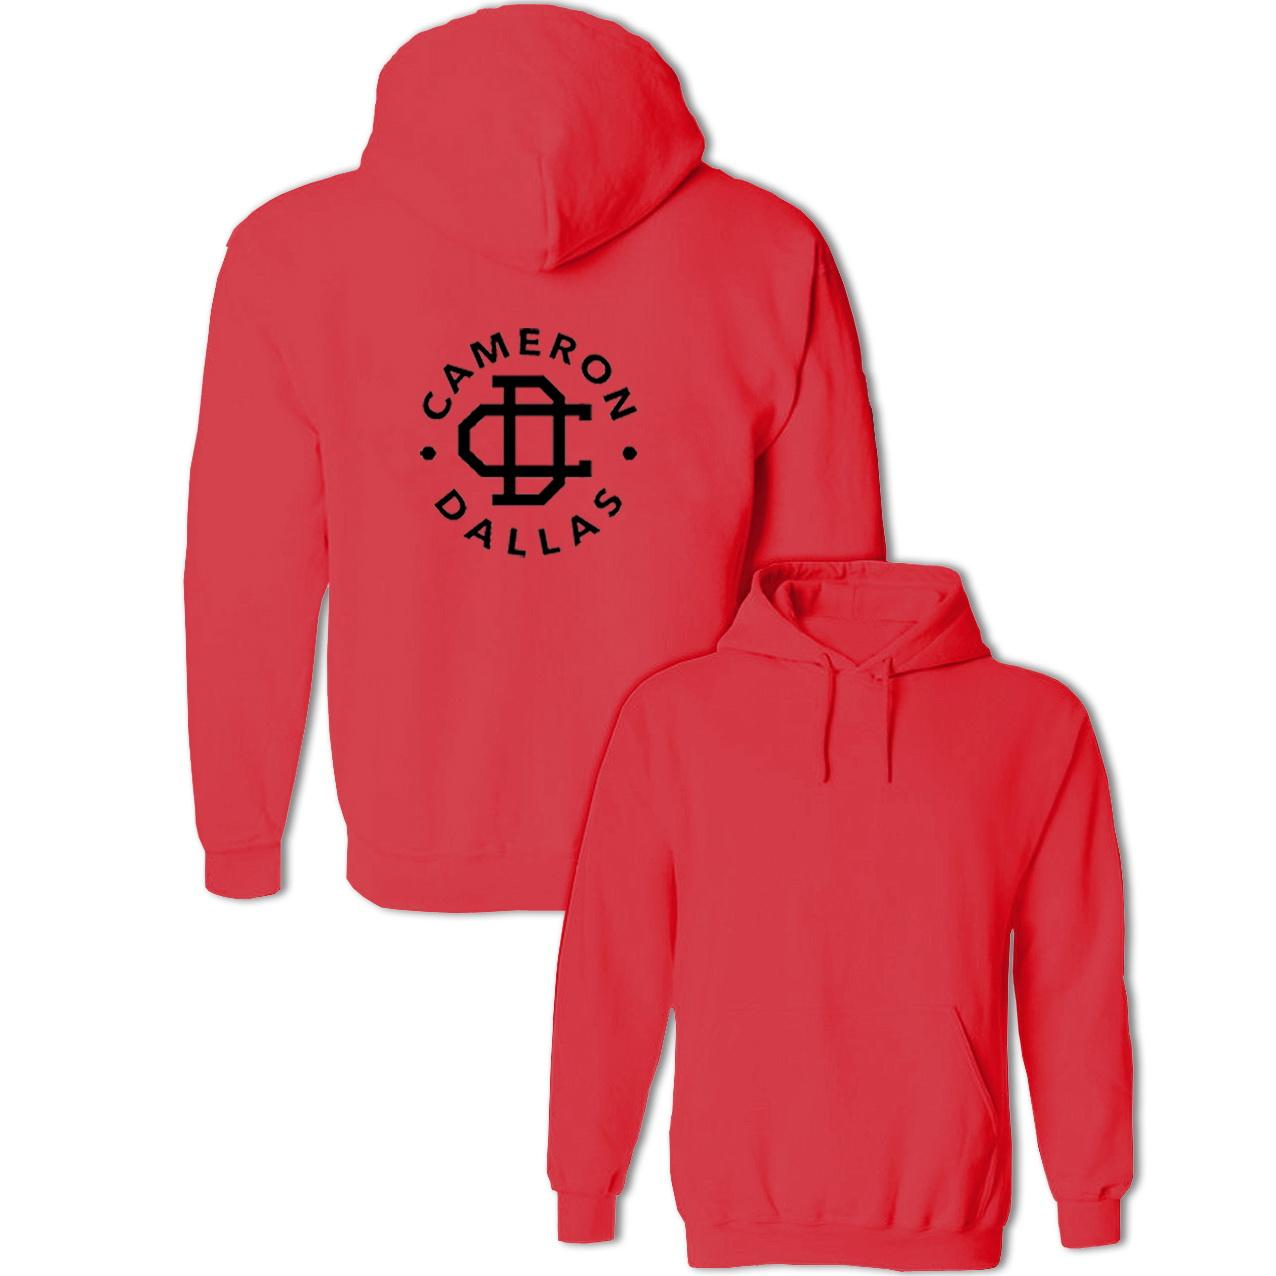 CAMERON DALLAS Hoodies Men s Women s Boy s Girl s Cotton Sweatshirt Special  Design Jackets Casual Long Sleeve Pullovers Tops UK 2019 From Sandlucy a2951a26f2